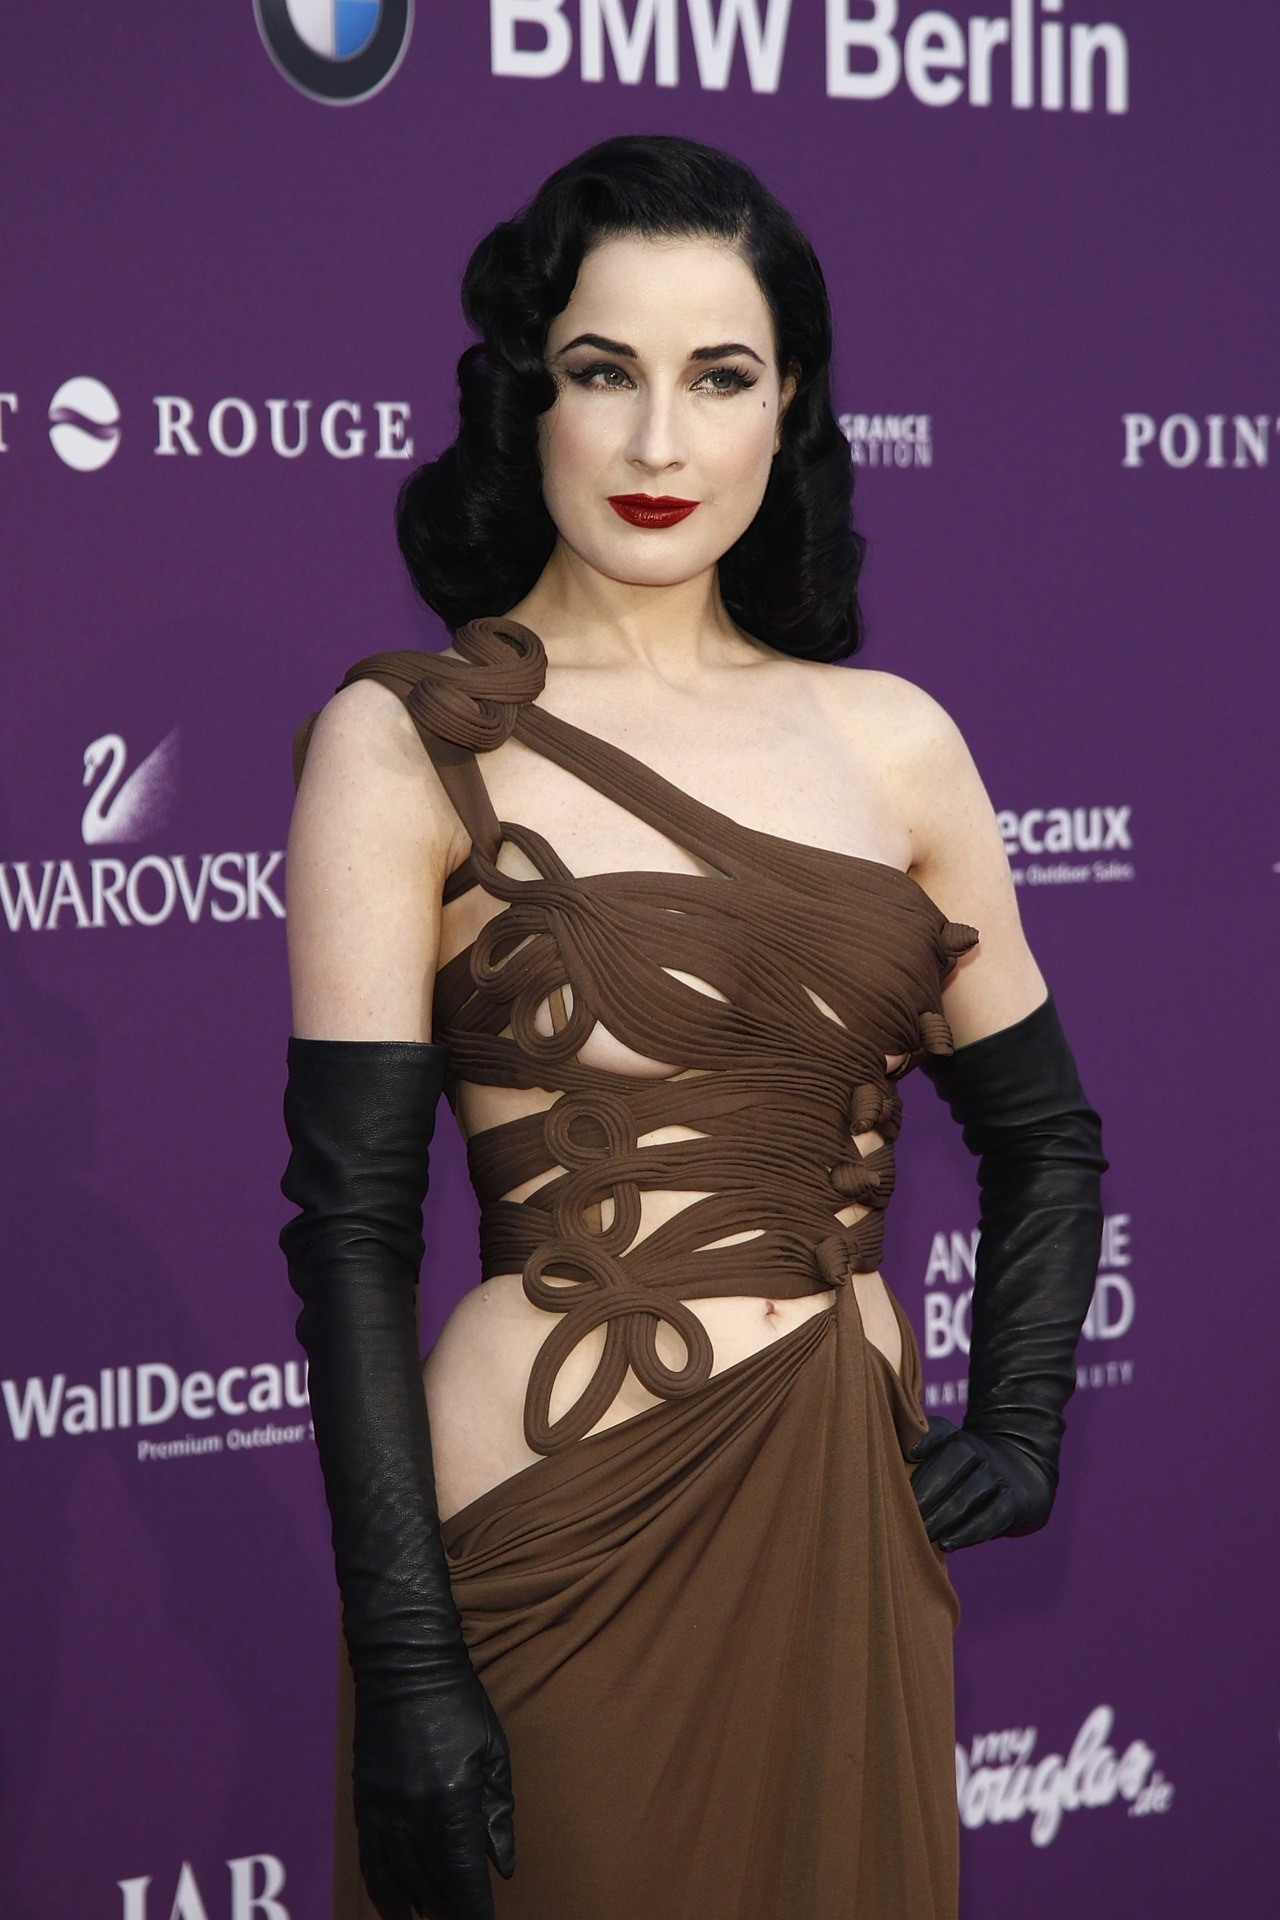 Dita Von Teese at the Duftstars Awards in Berlin, German, May 4th